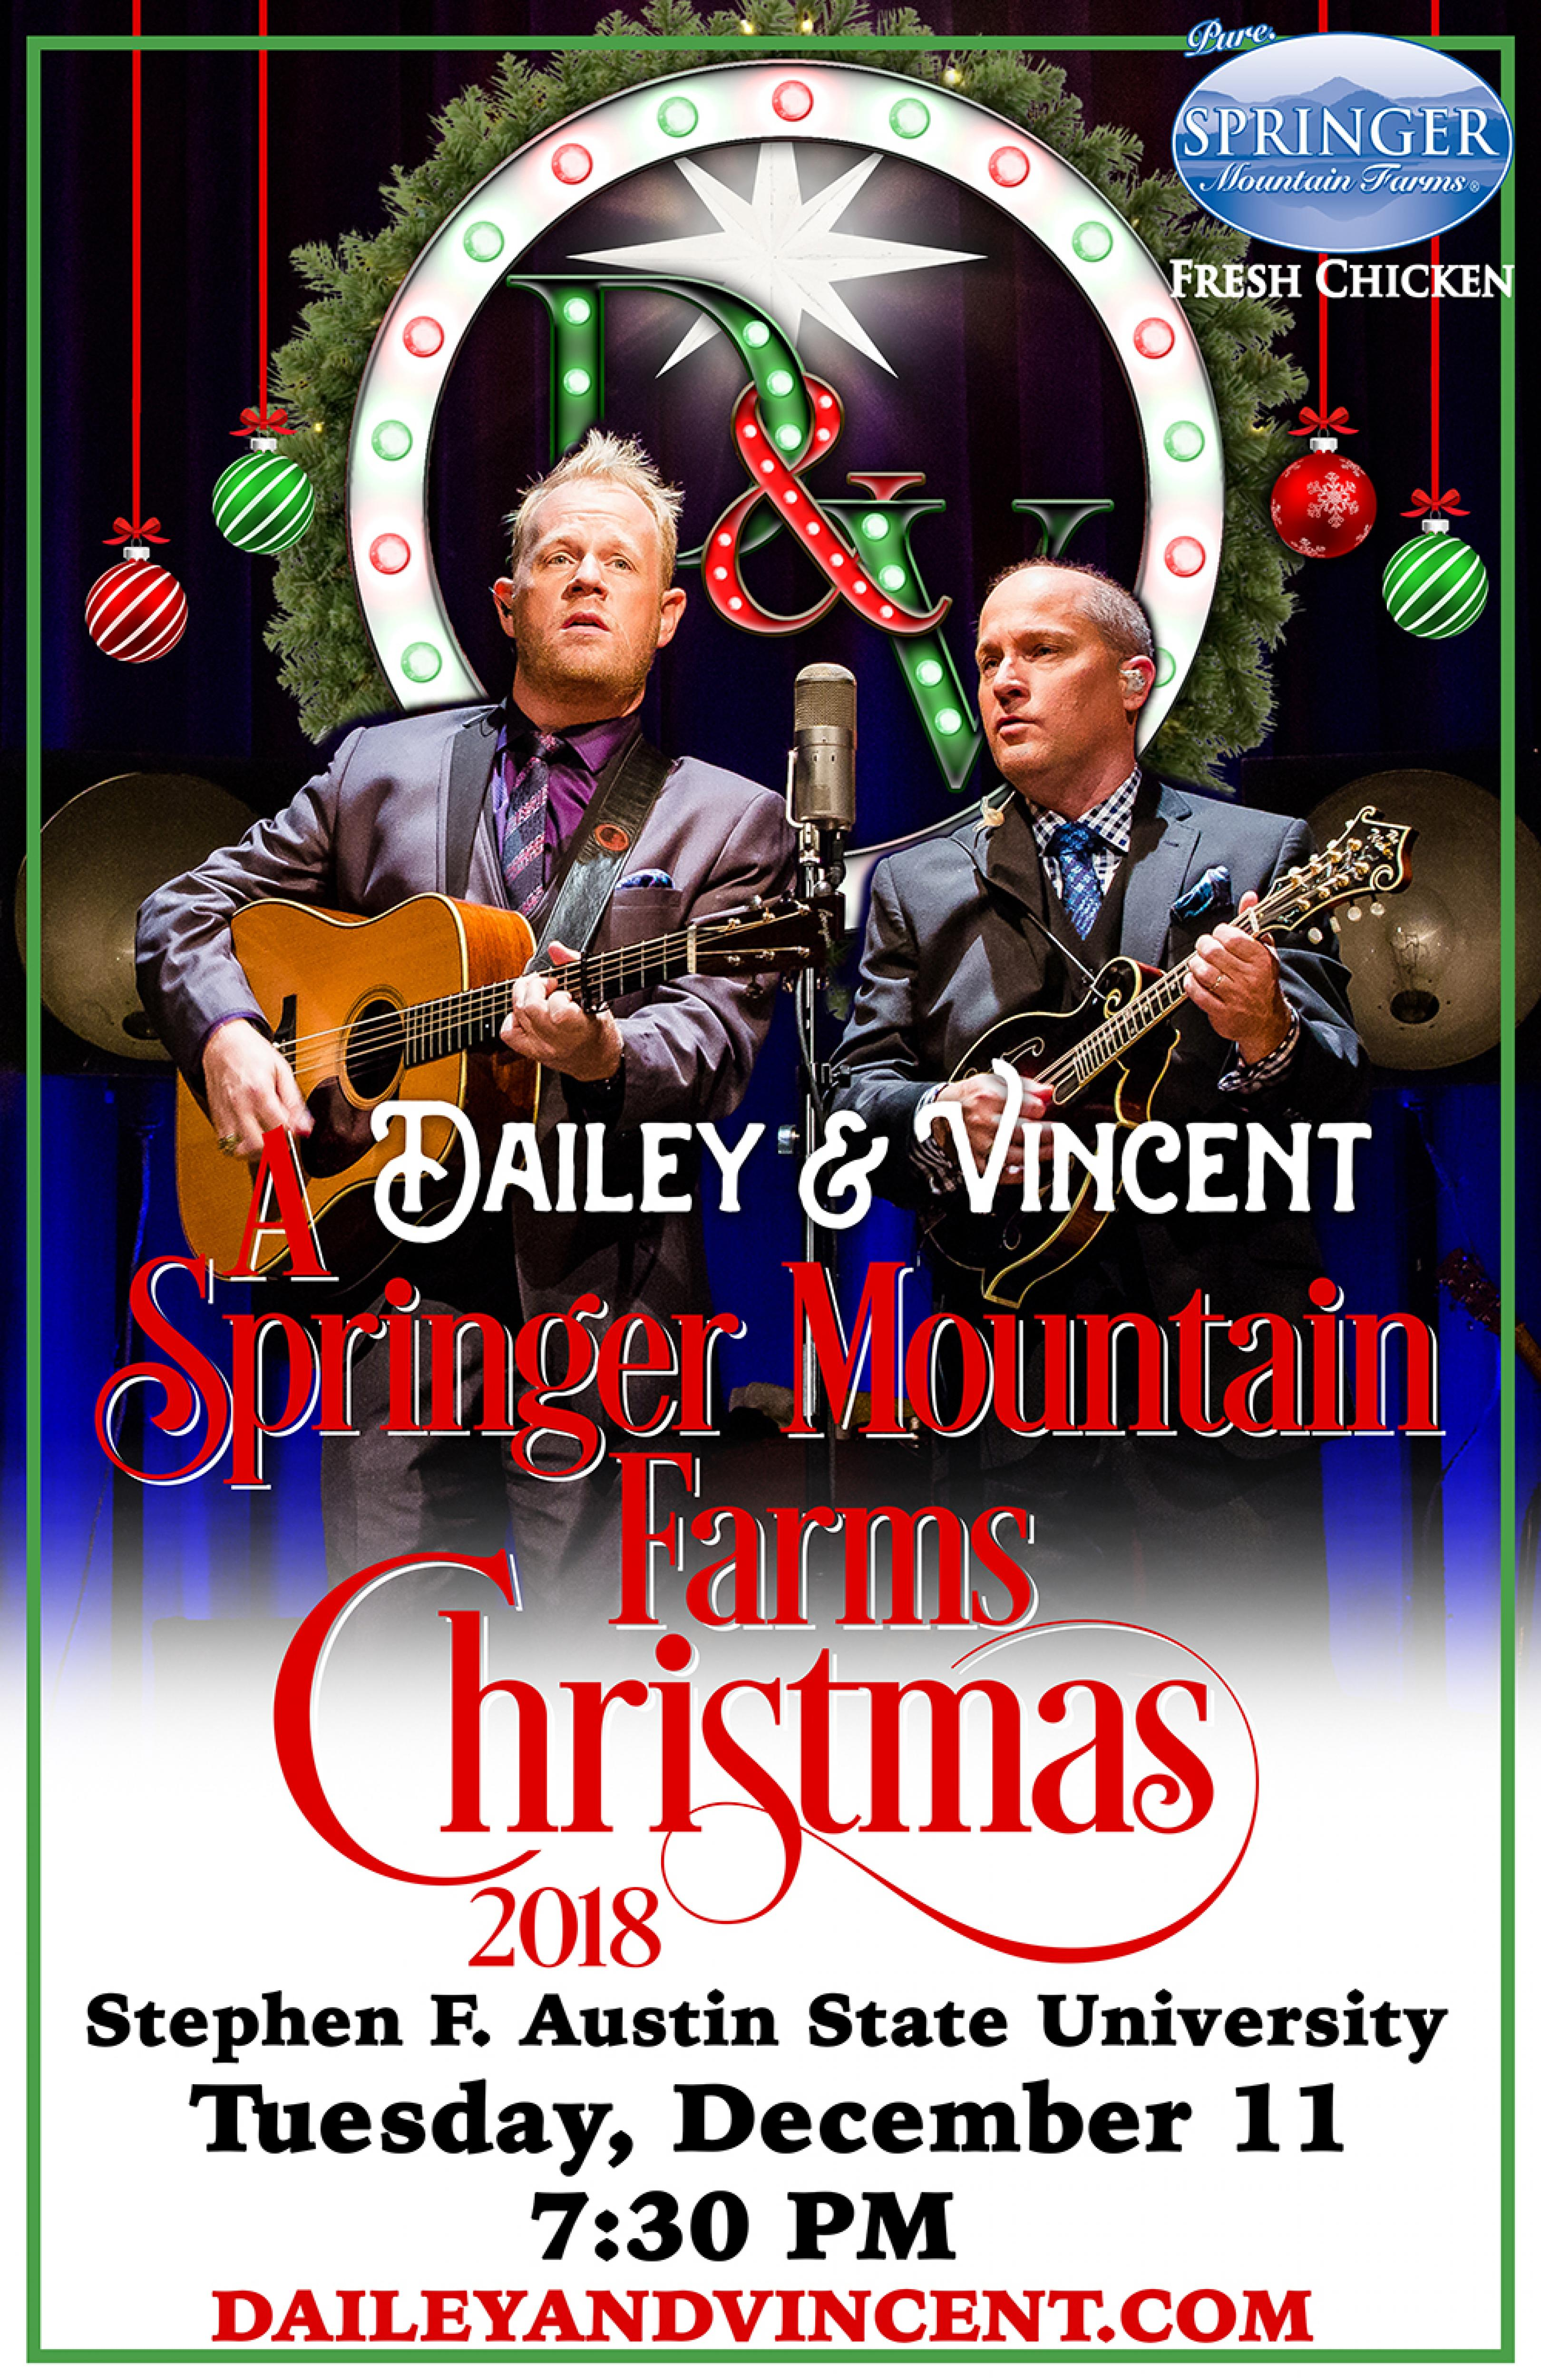 publicity image for Dailey & Vincent: A Springer Mountain Farms Christmas